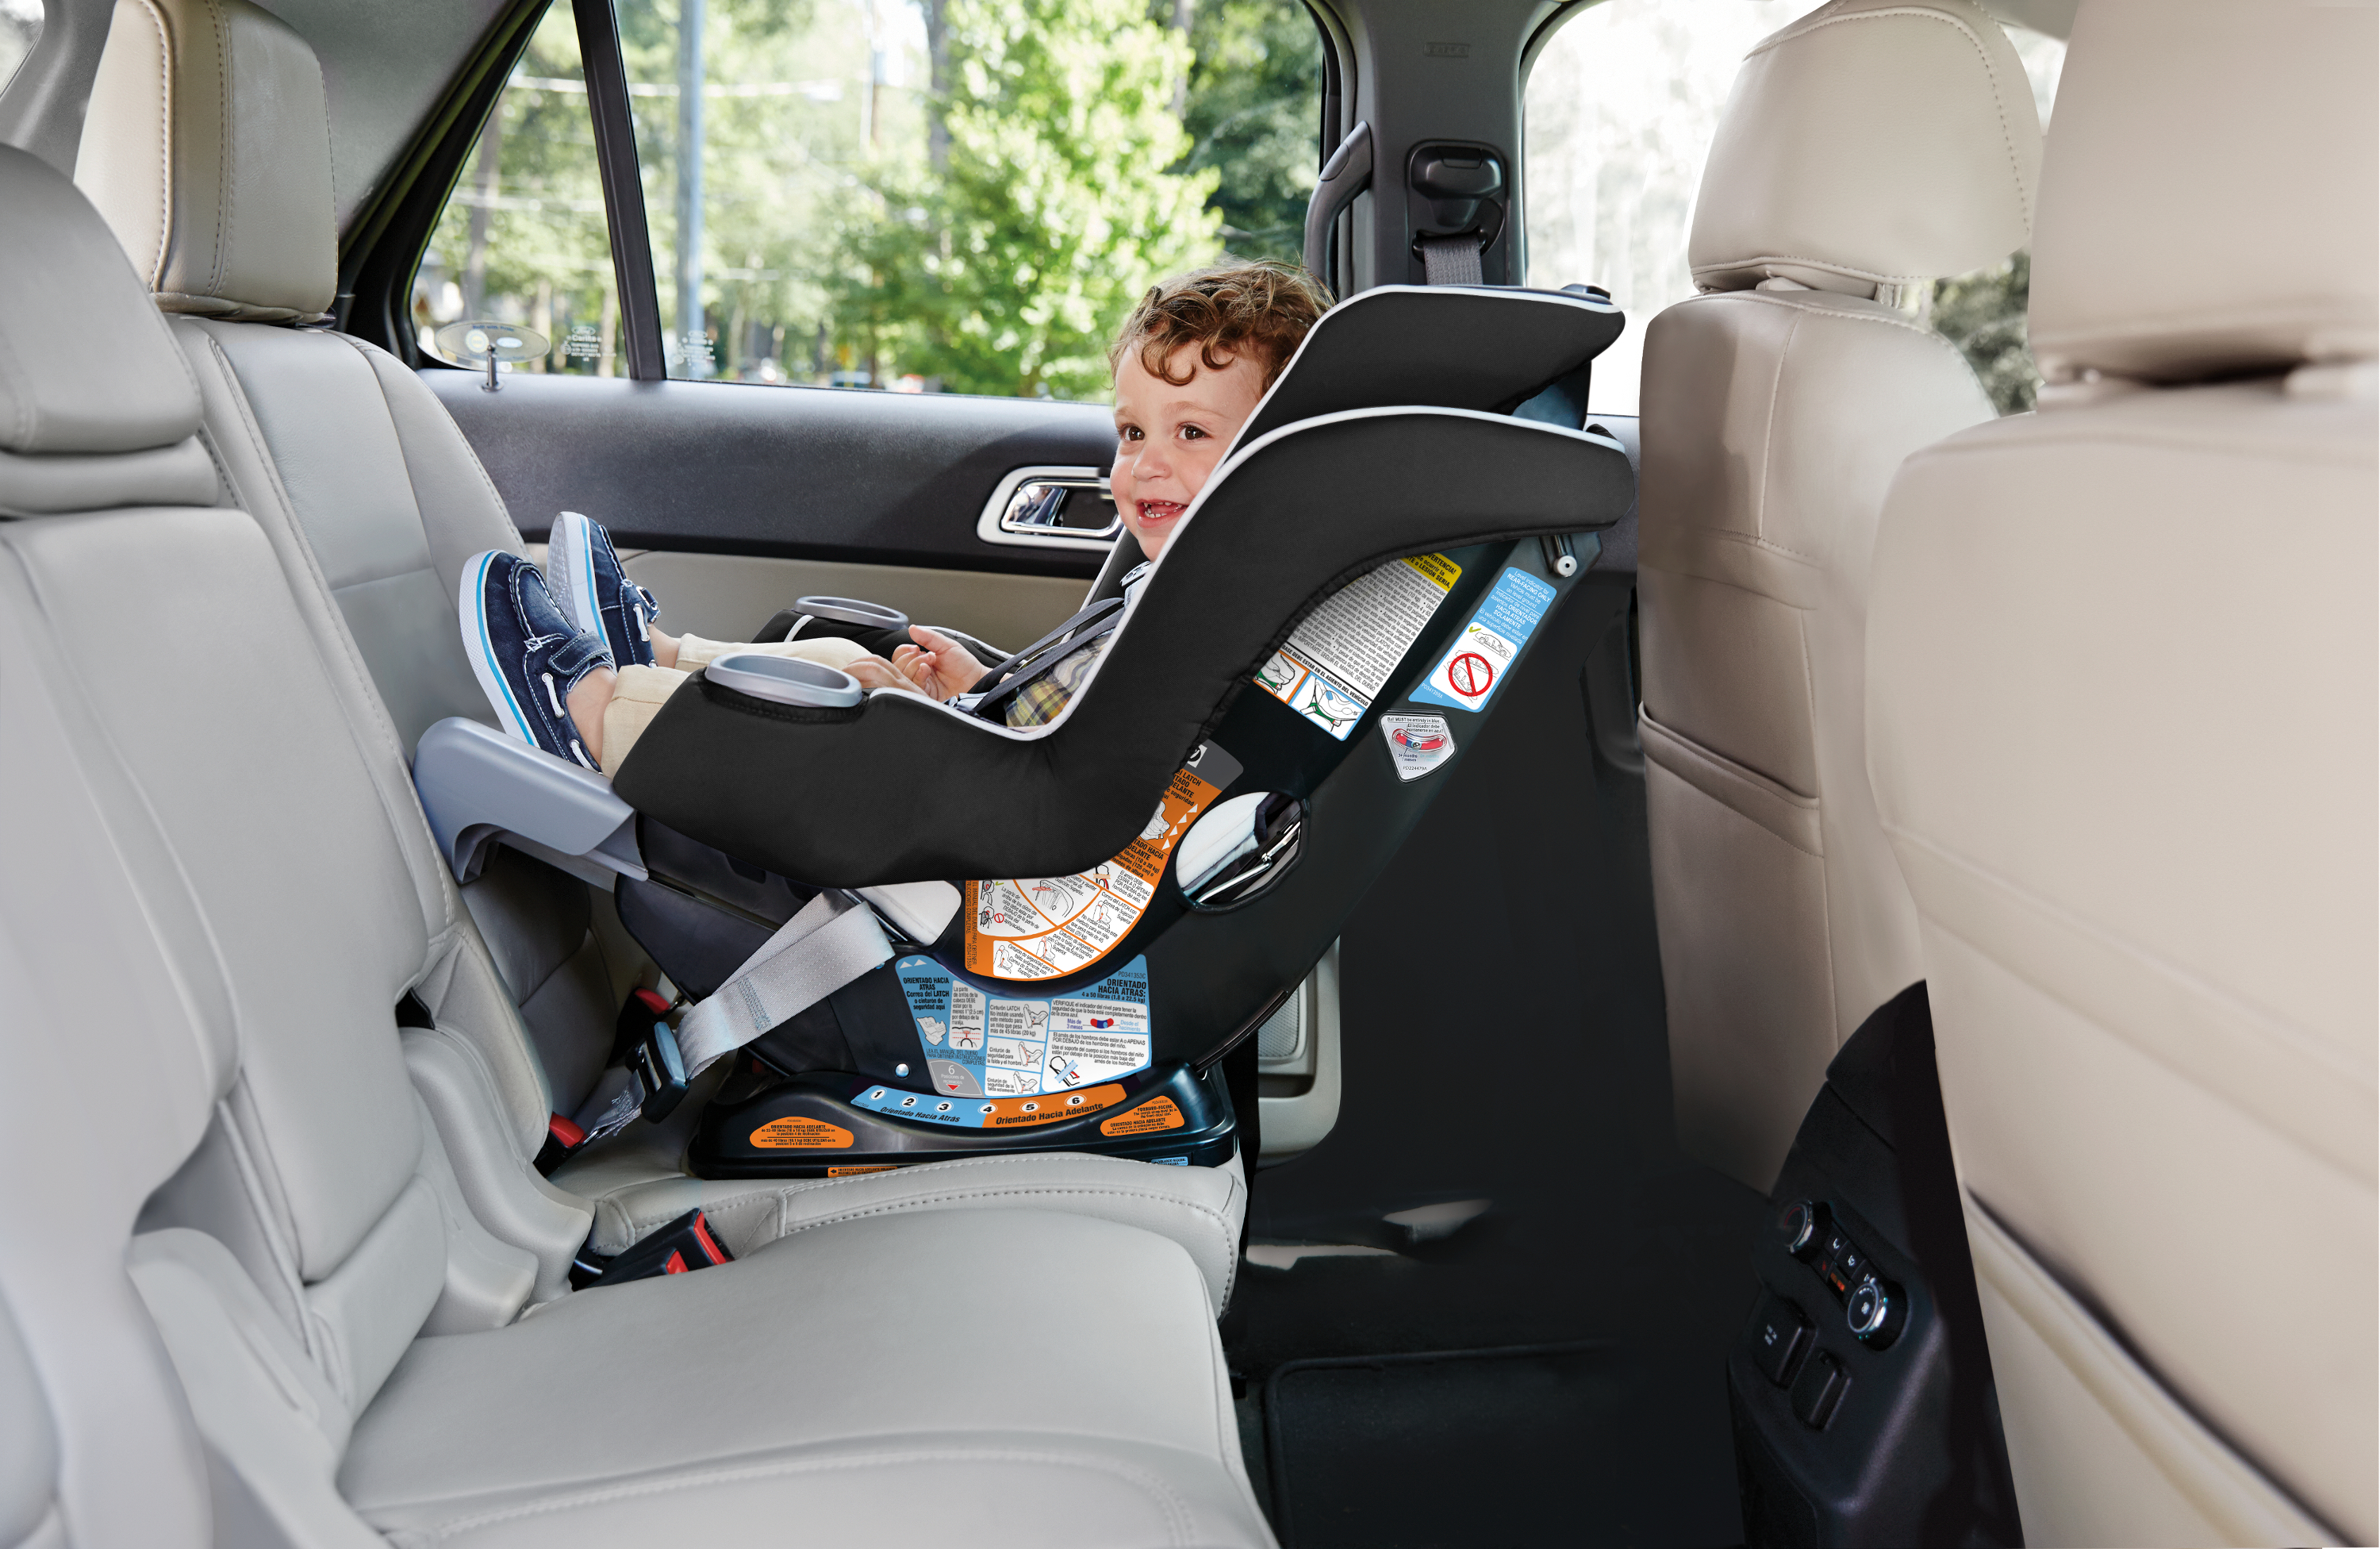 graco launches new extend2fit tm convertible car seat designed to allow children to safely. Black Bedroom Furniture Sets. Home Design Ideas